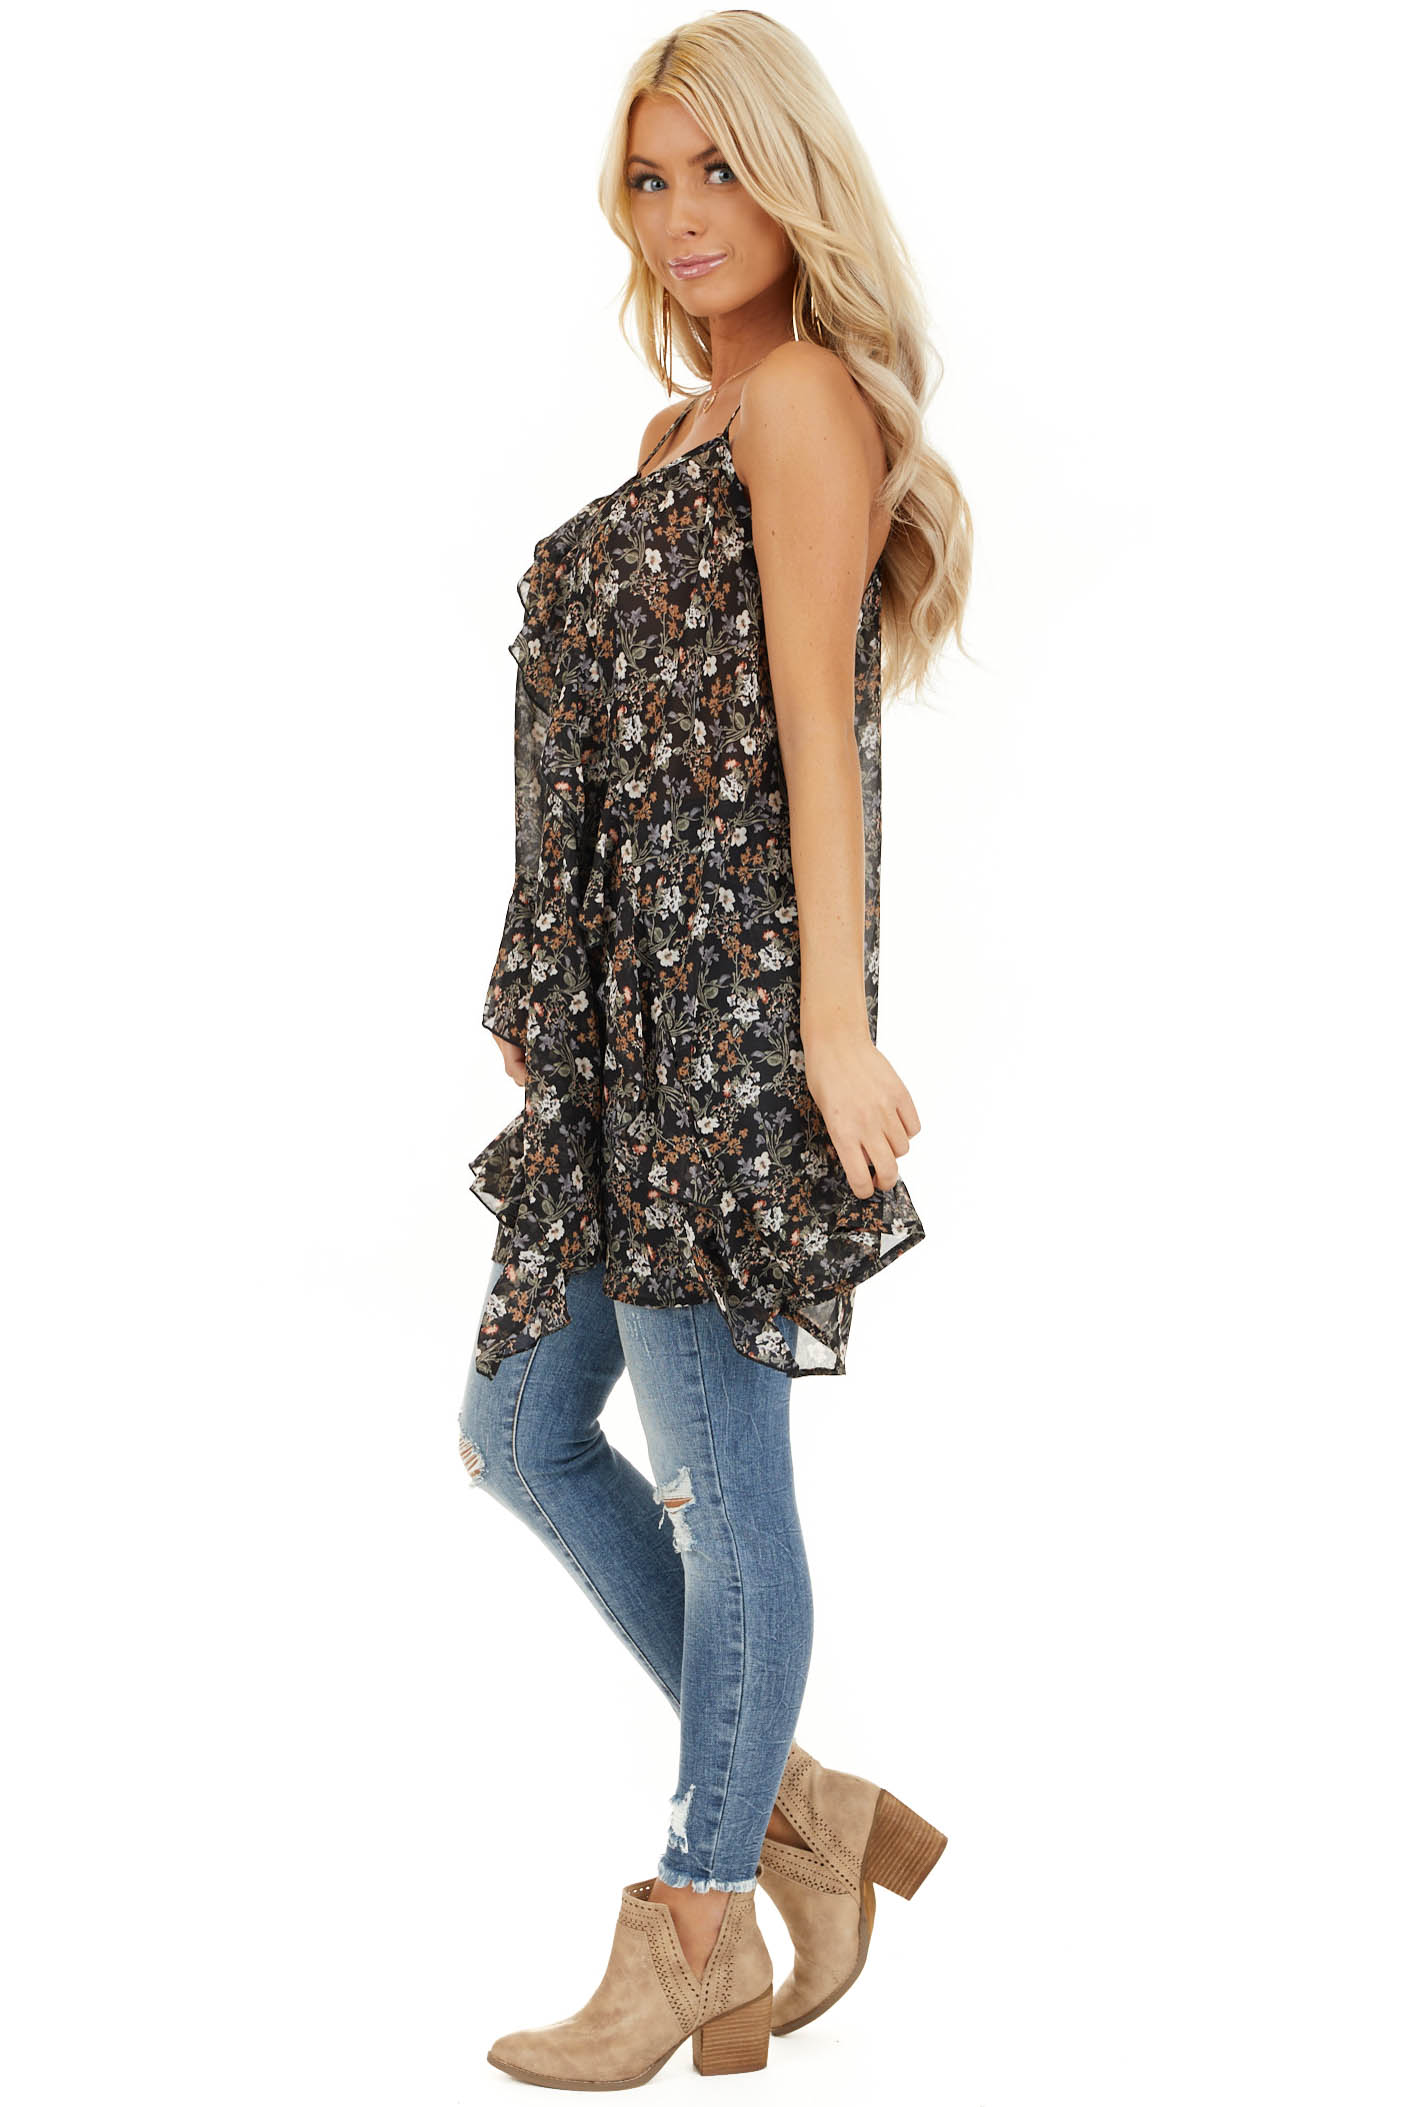 Raven Black Floral Print Cami Tunic Top with Ruffle Detail side full body